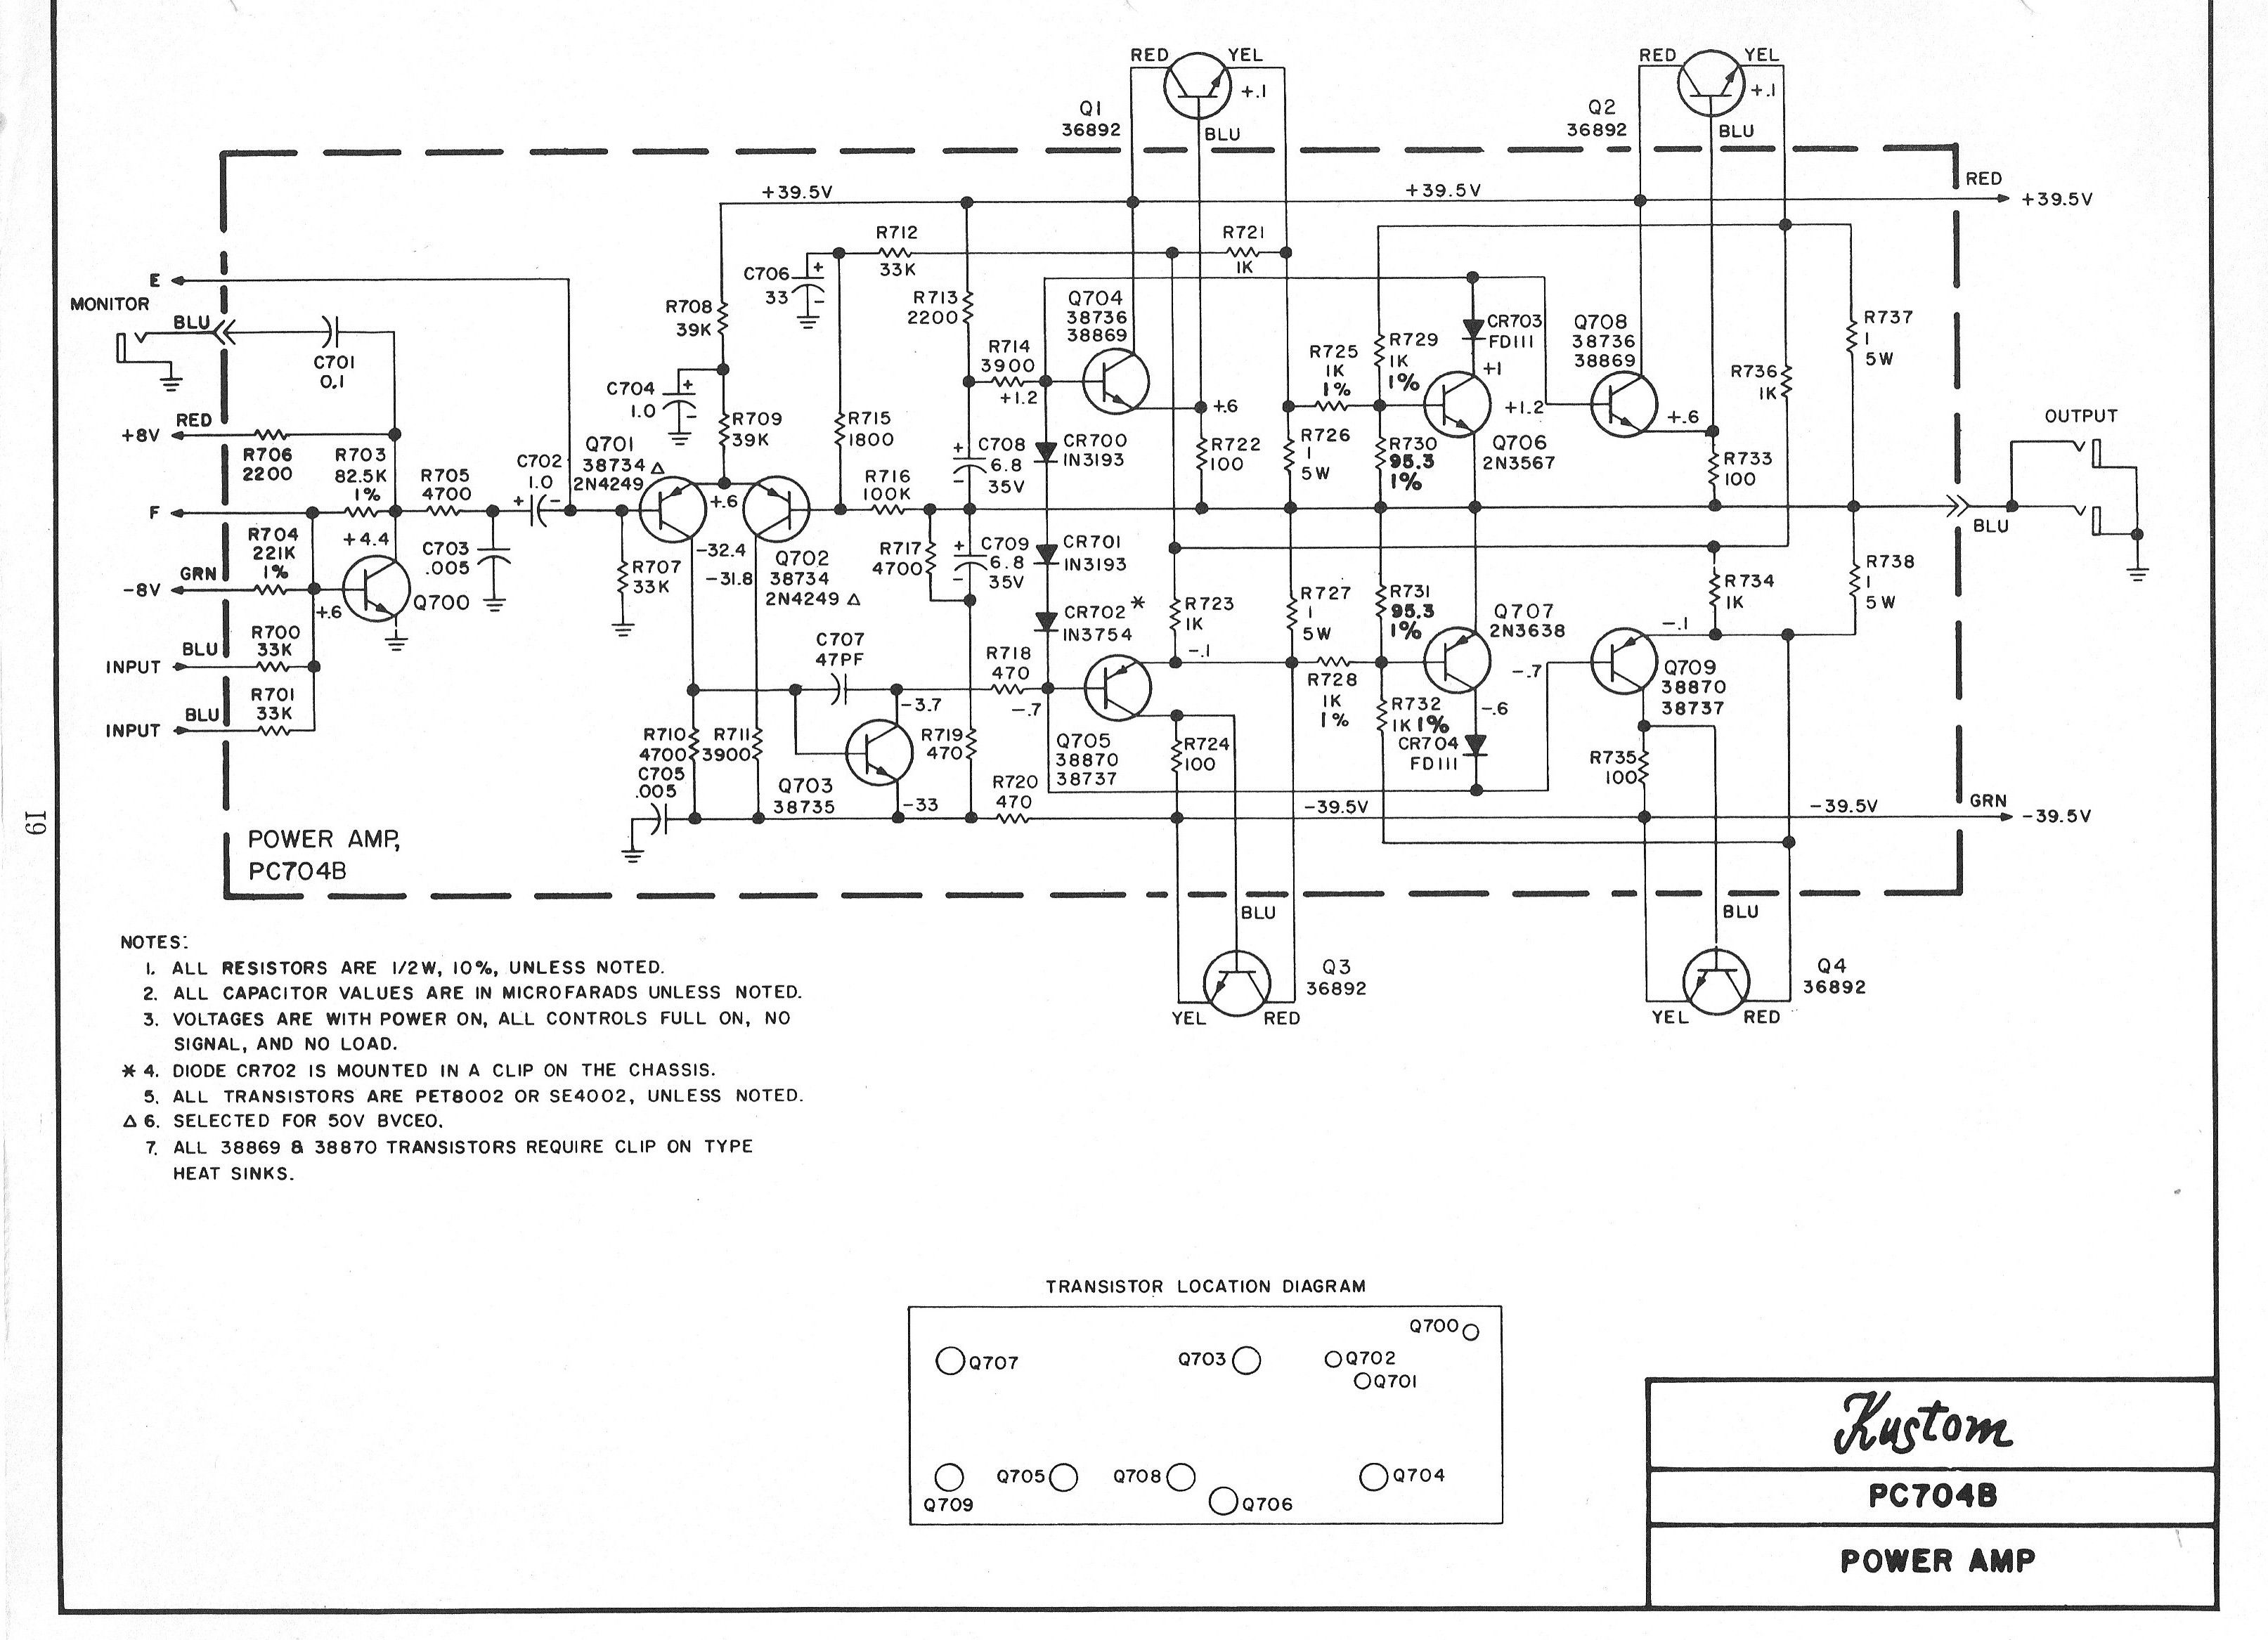 kustom amplifier schematic in 2019 circuit diagram Kustom Amp Schematic